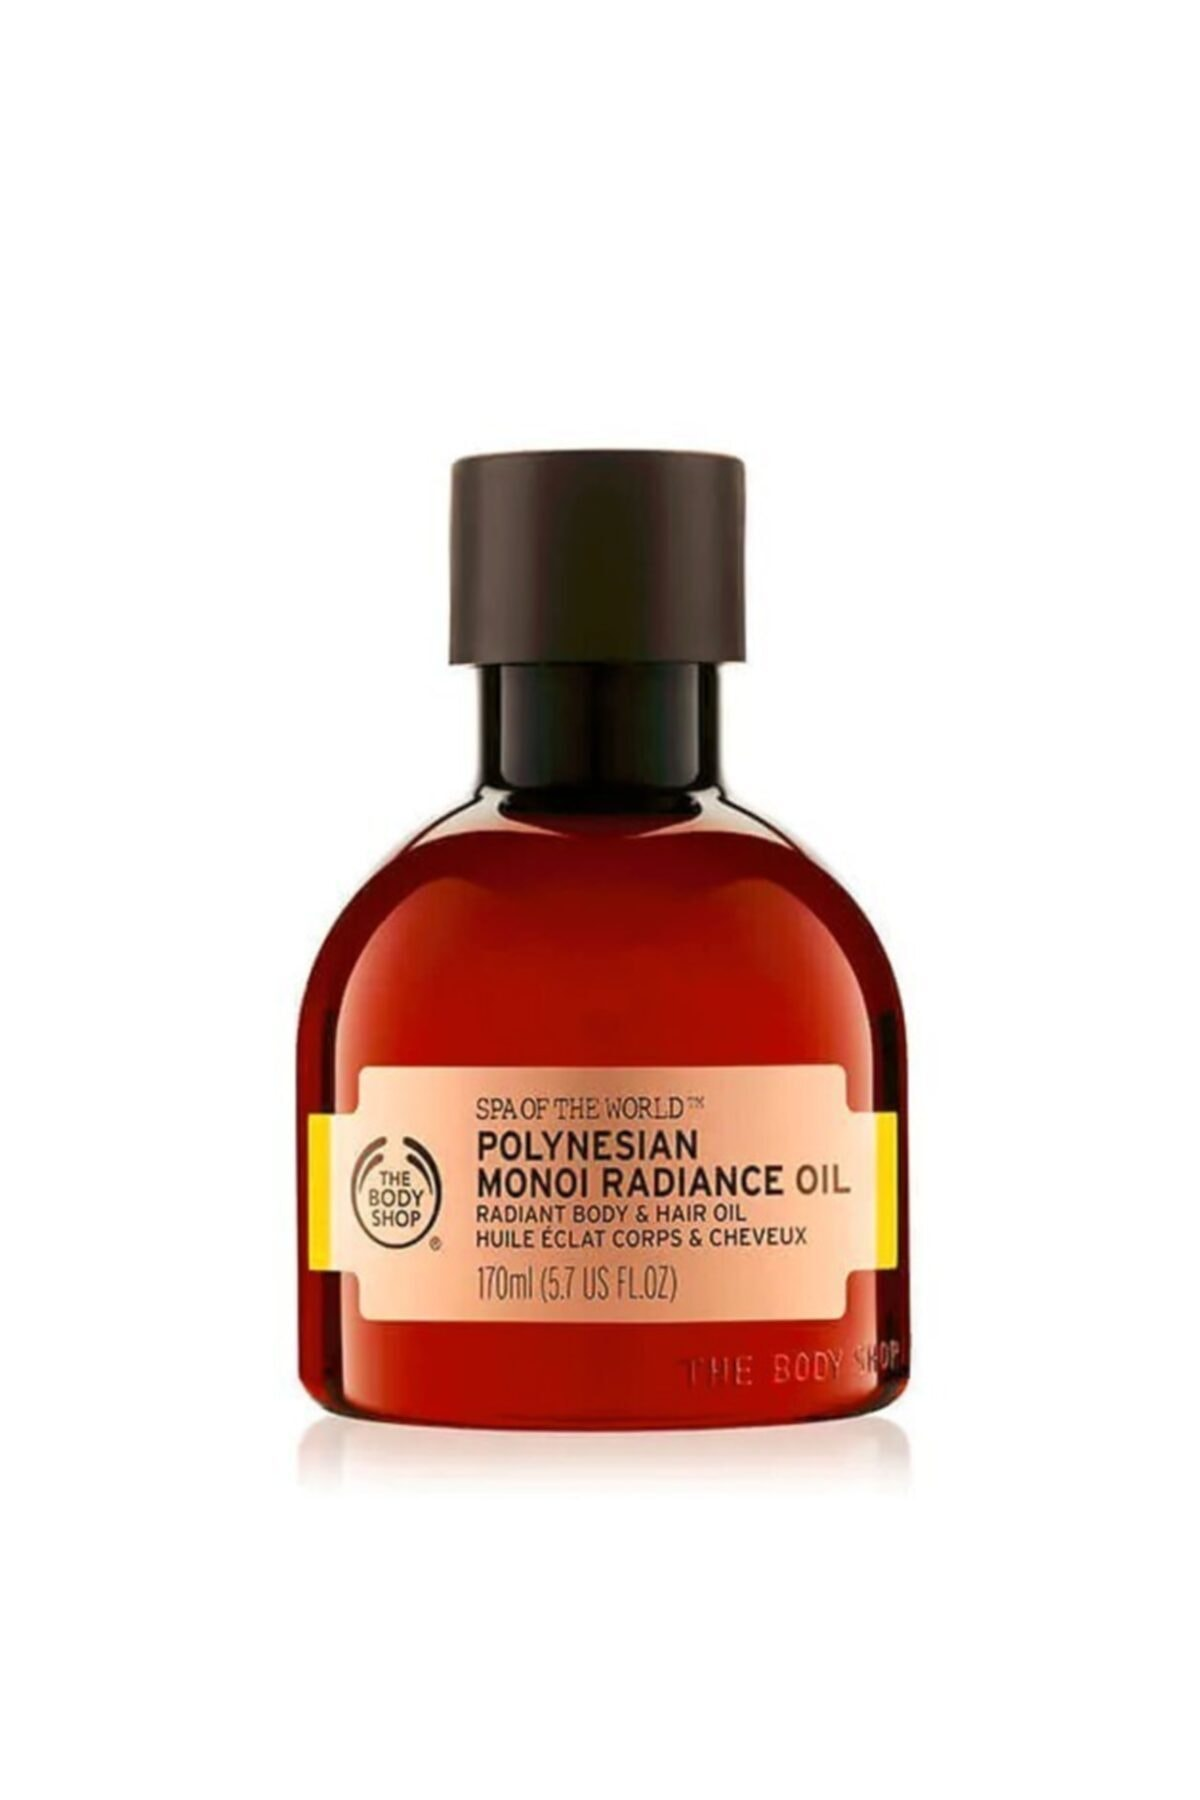 THE BODY SHOP Spa Of The World Polynesian Monoi Saç Ve Vücut Yağı 170ml 1